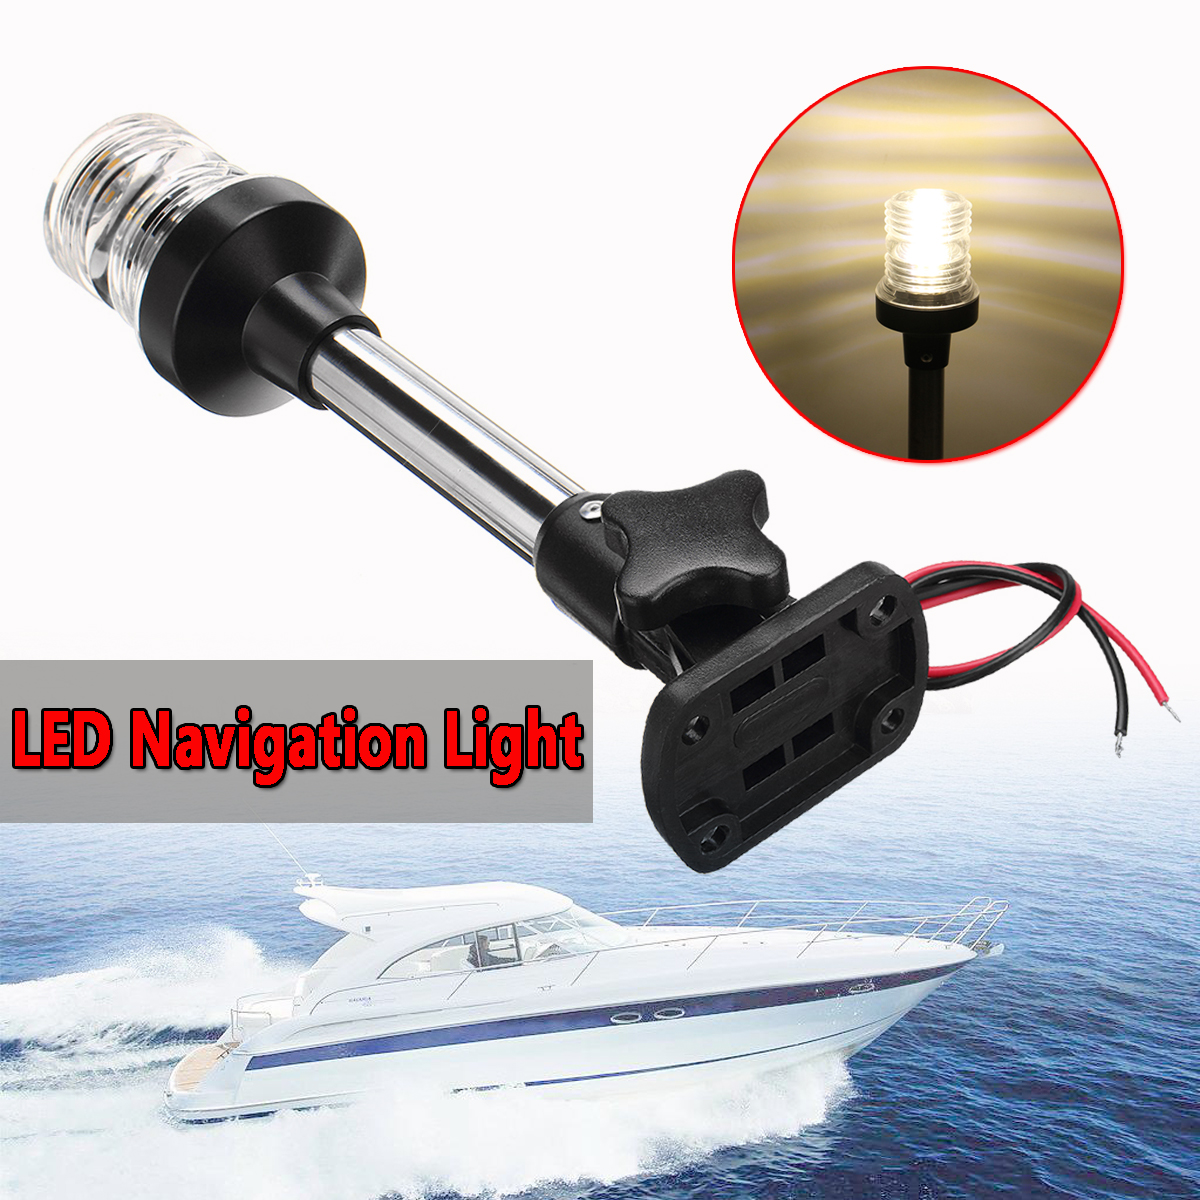 Official Website Beler Led Abs Light Electronic Navigation Compass Fit For Marine Boat Sail Ship Vehicle Car Confirming Navigation Directions Marine Hardware Automobiles & Motorcycles